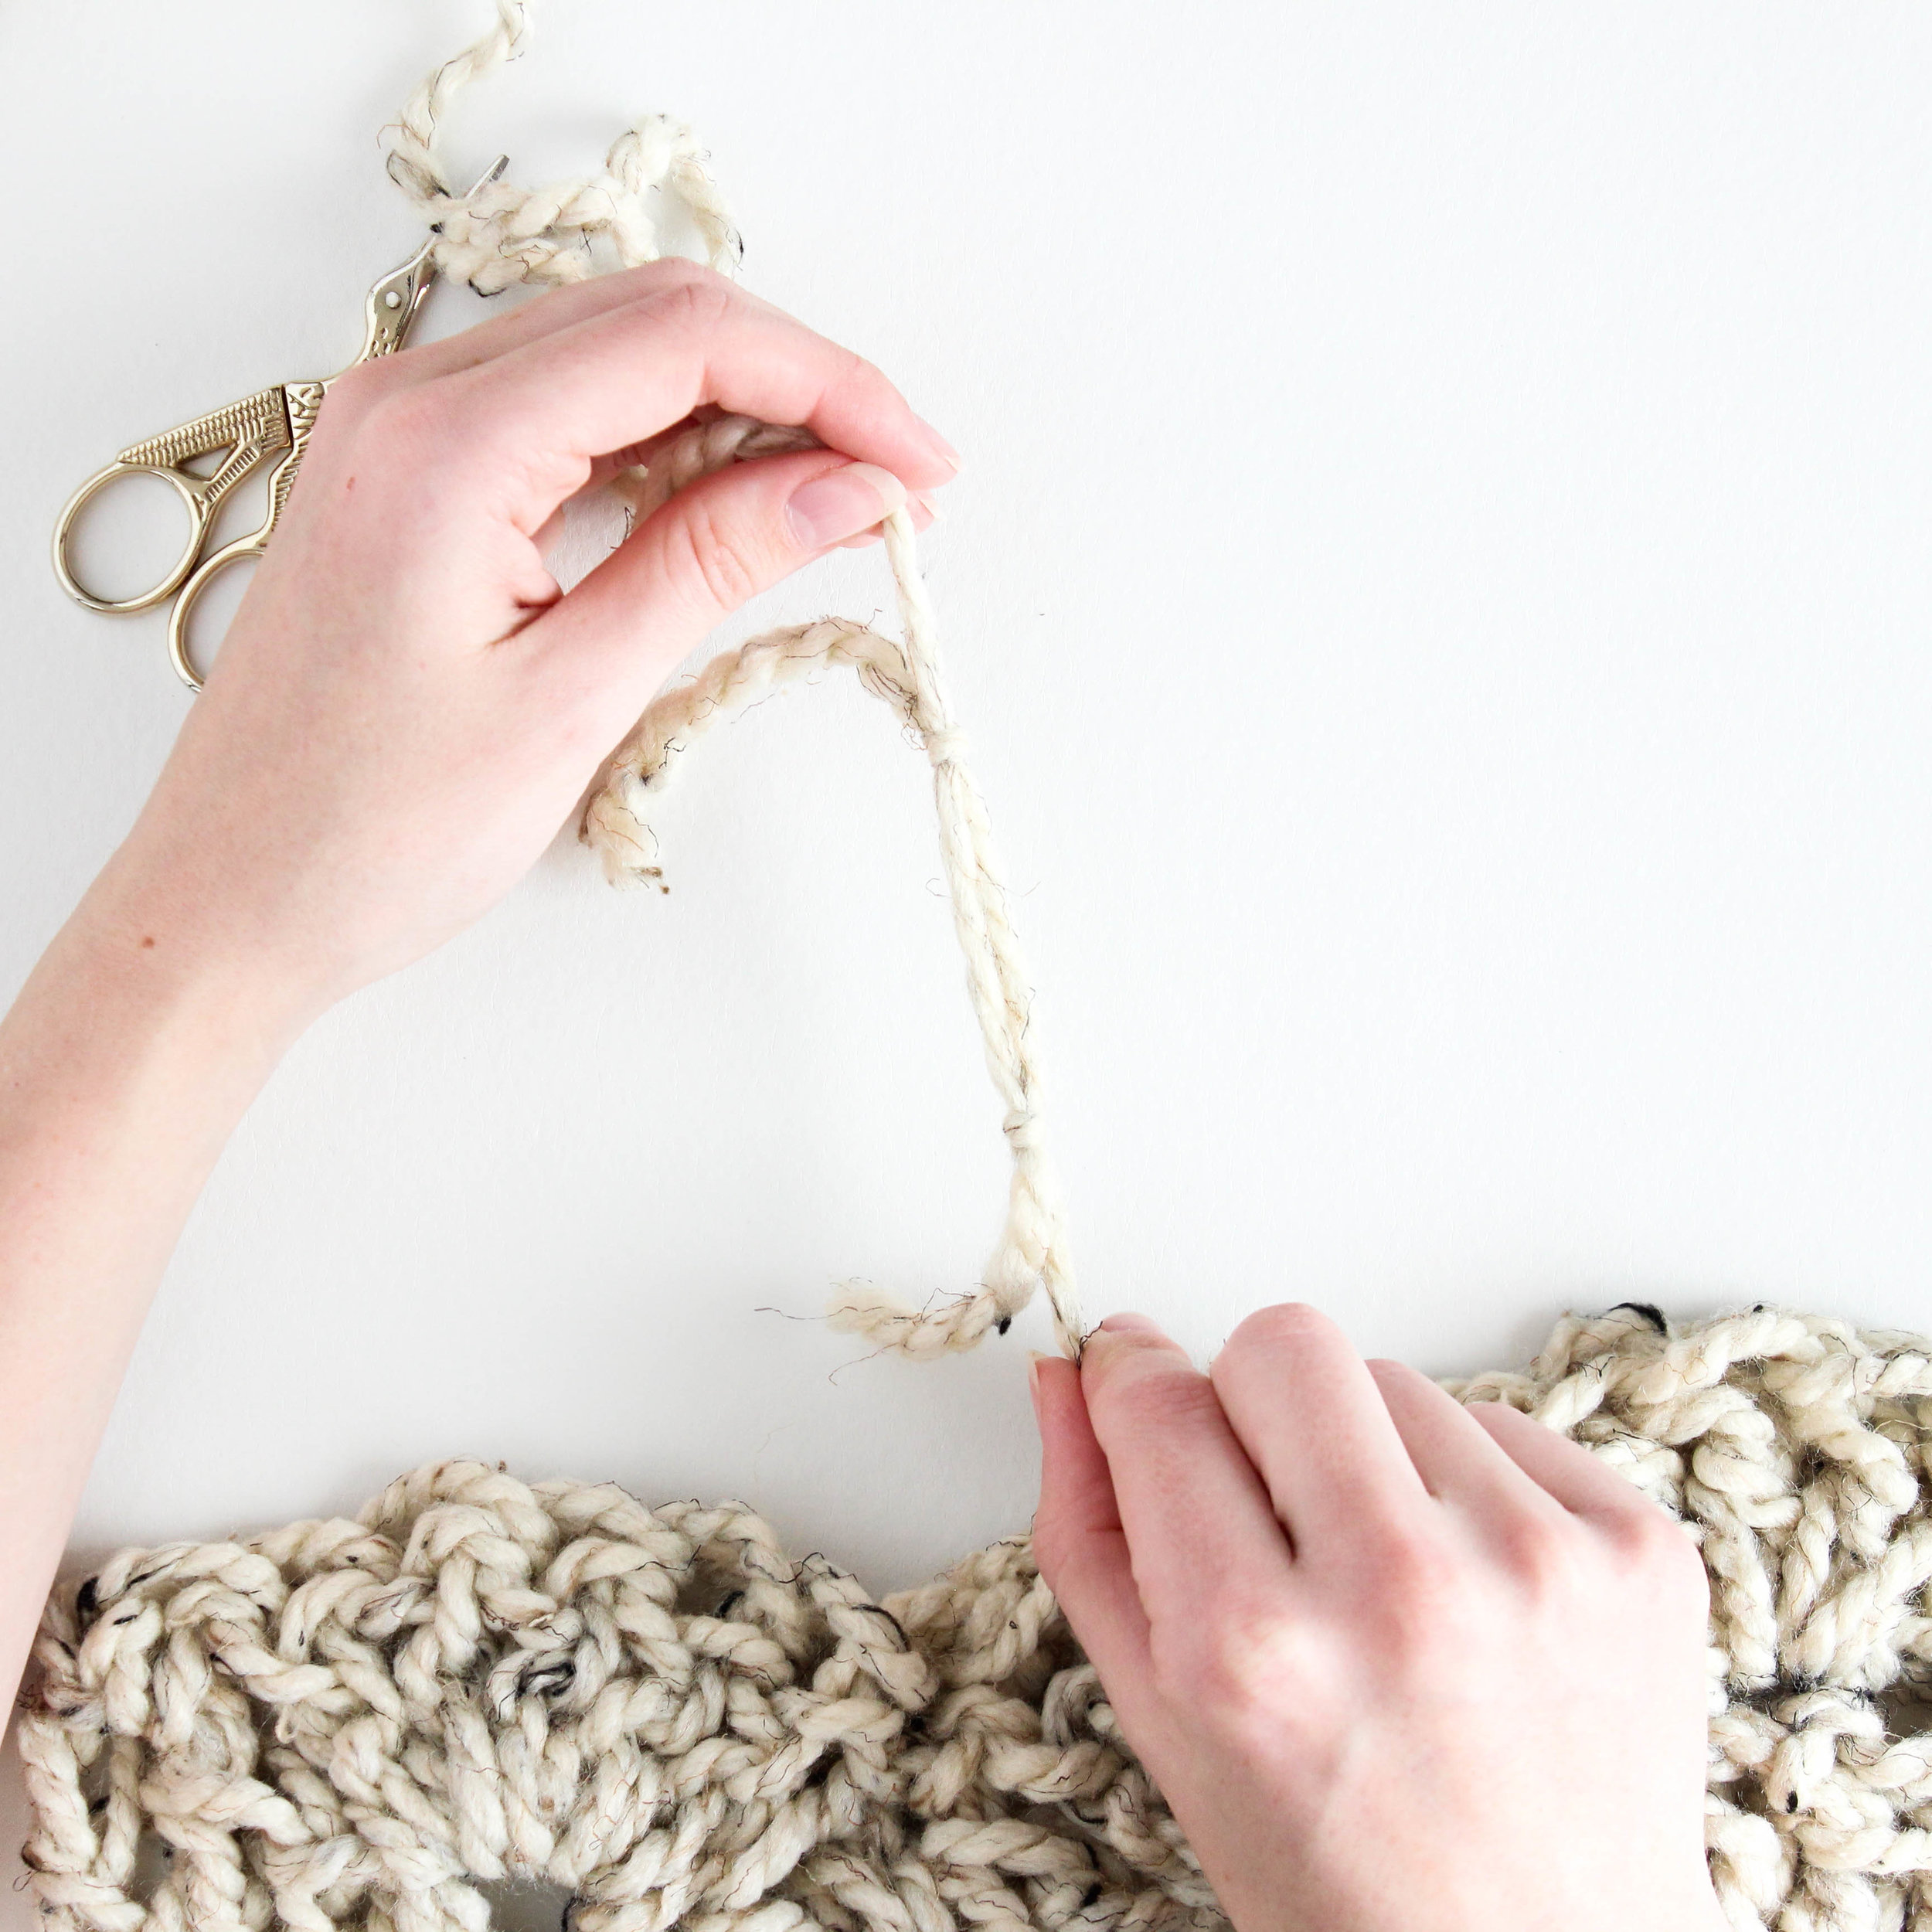 Crochet Magic Knot Tutorial // Darling Be Brave